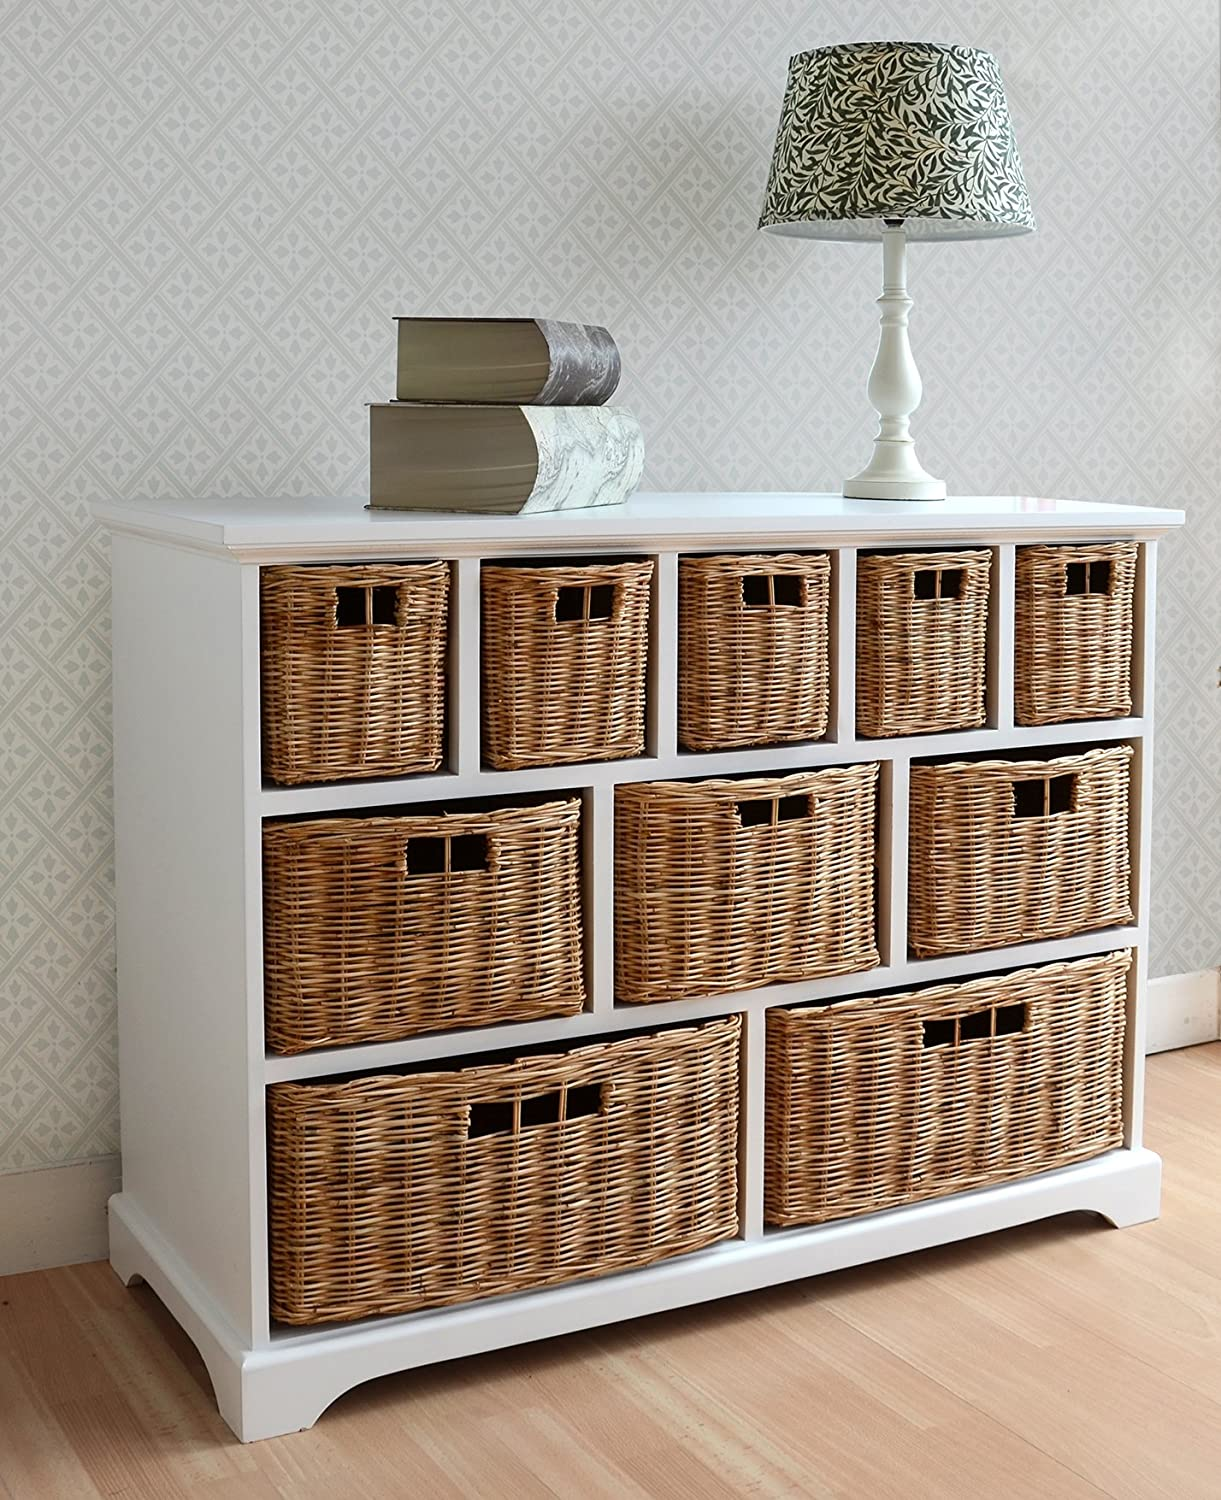 Tetbury white storage unit with 5 drawers bedroom furniture direct - Tetbury Wide Storage Chest Of Drawers With Wicker Baskets Very Solid Basket Storage Unit Generously Sized Fully Assembled Amazon Co Uk Kitchen Home